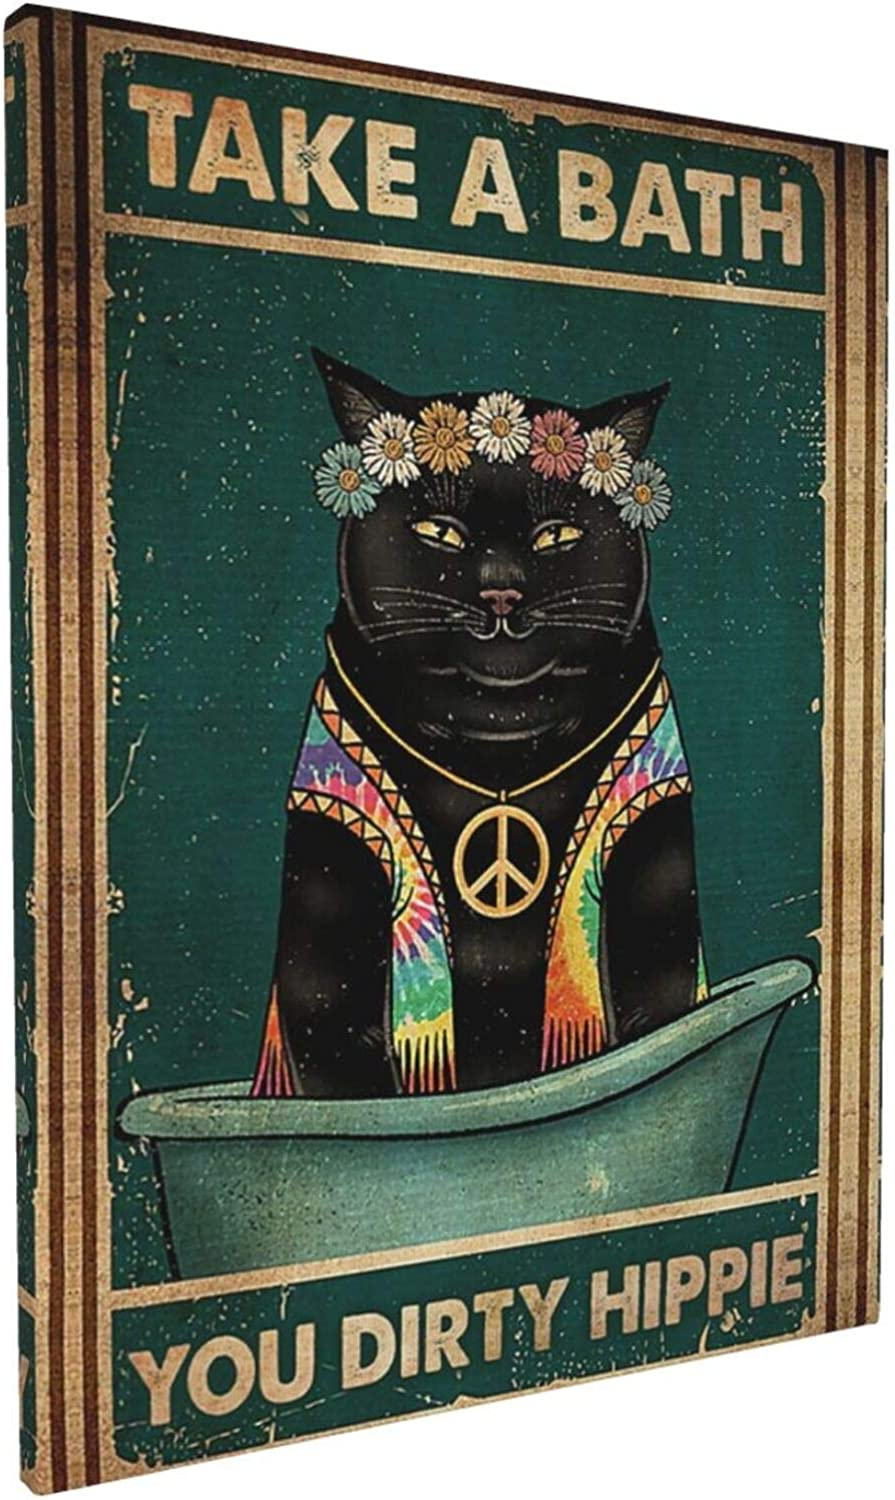 Socira Bathroom Wall Decor Hippie Black Cat Take A Bath Canvas Pictures Artwork Ready to Hang Abstract Wash Dirty Paws Wall Art Framed Modern Artwork for Living Room, Kitchen, Bedroom, Home Decoration